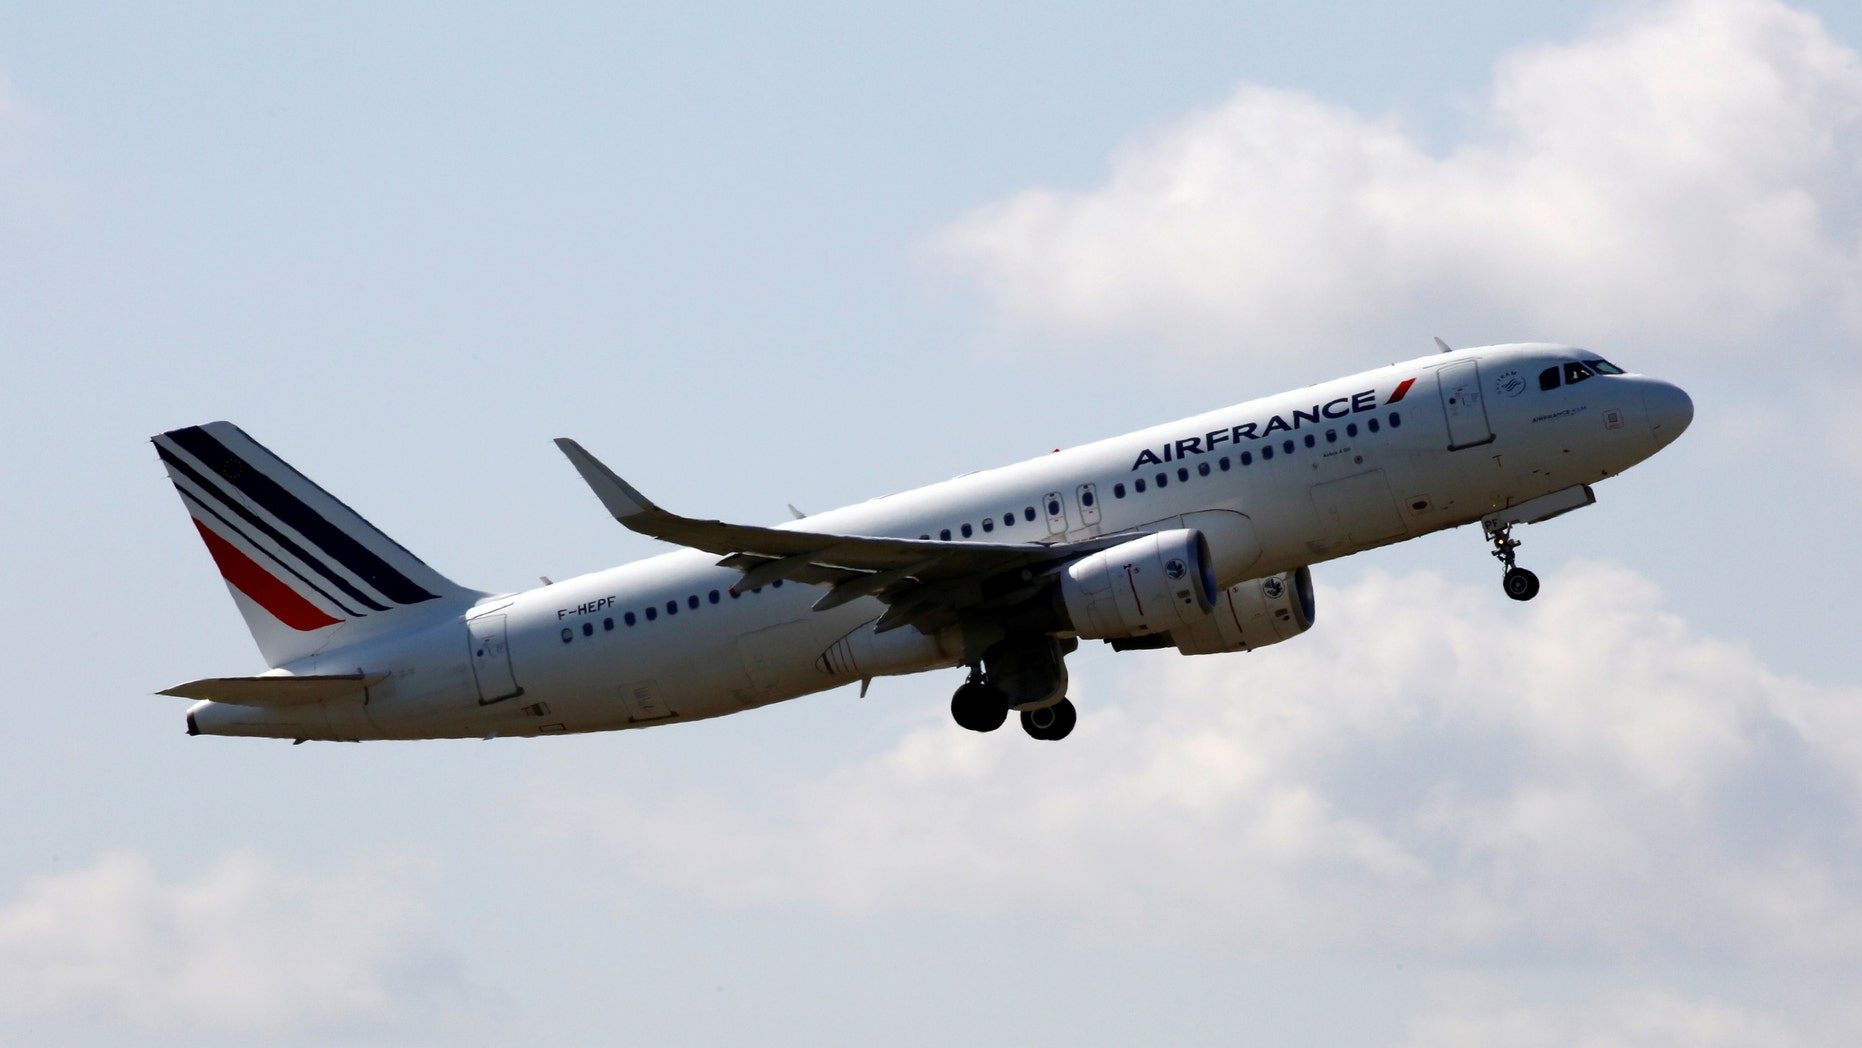 File photo - An Air France Airbus A320 aircraft takes off at the Charles de Gaulle airport in Roissy, France, Aug. 9, 2016. (REUTERS/Jacky Naegelen)